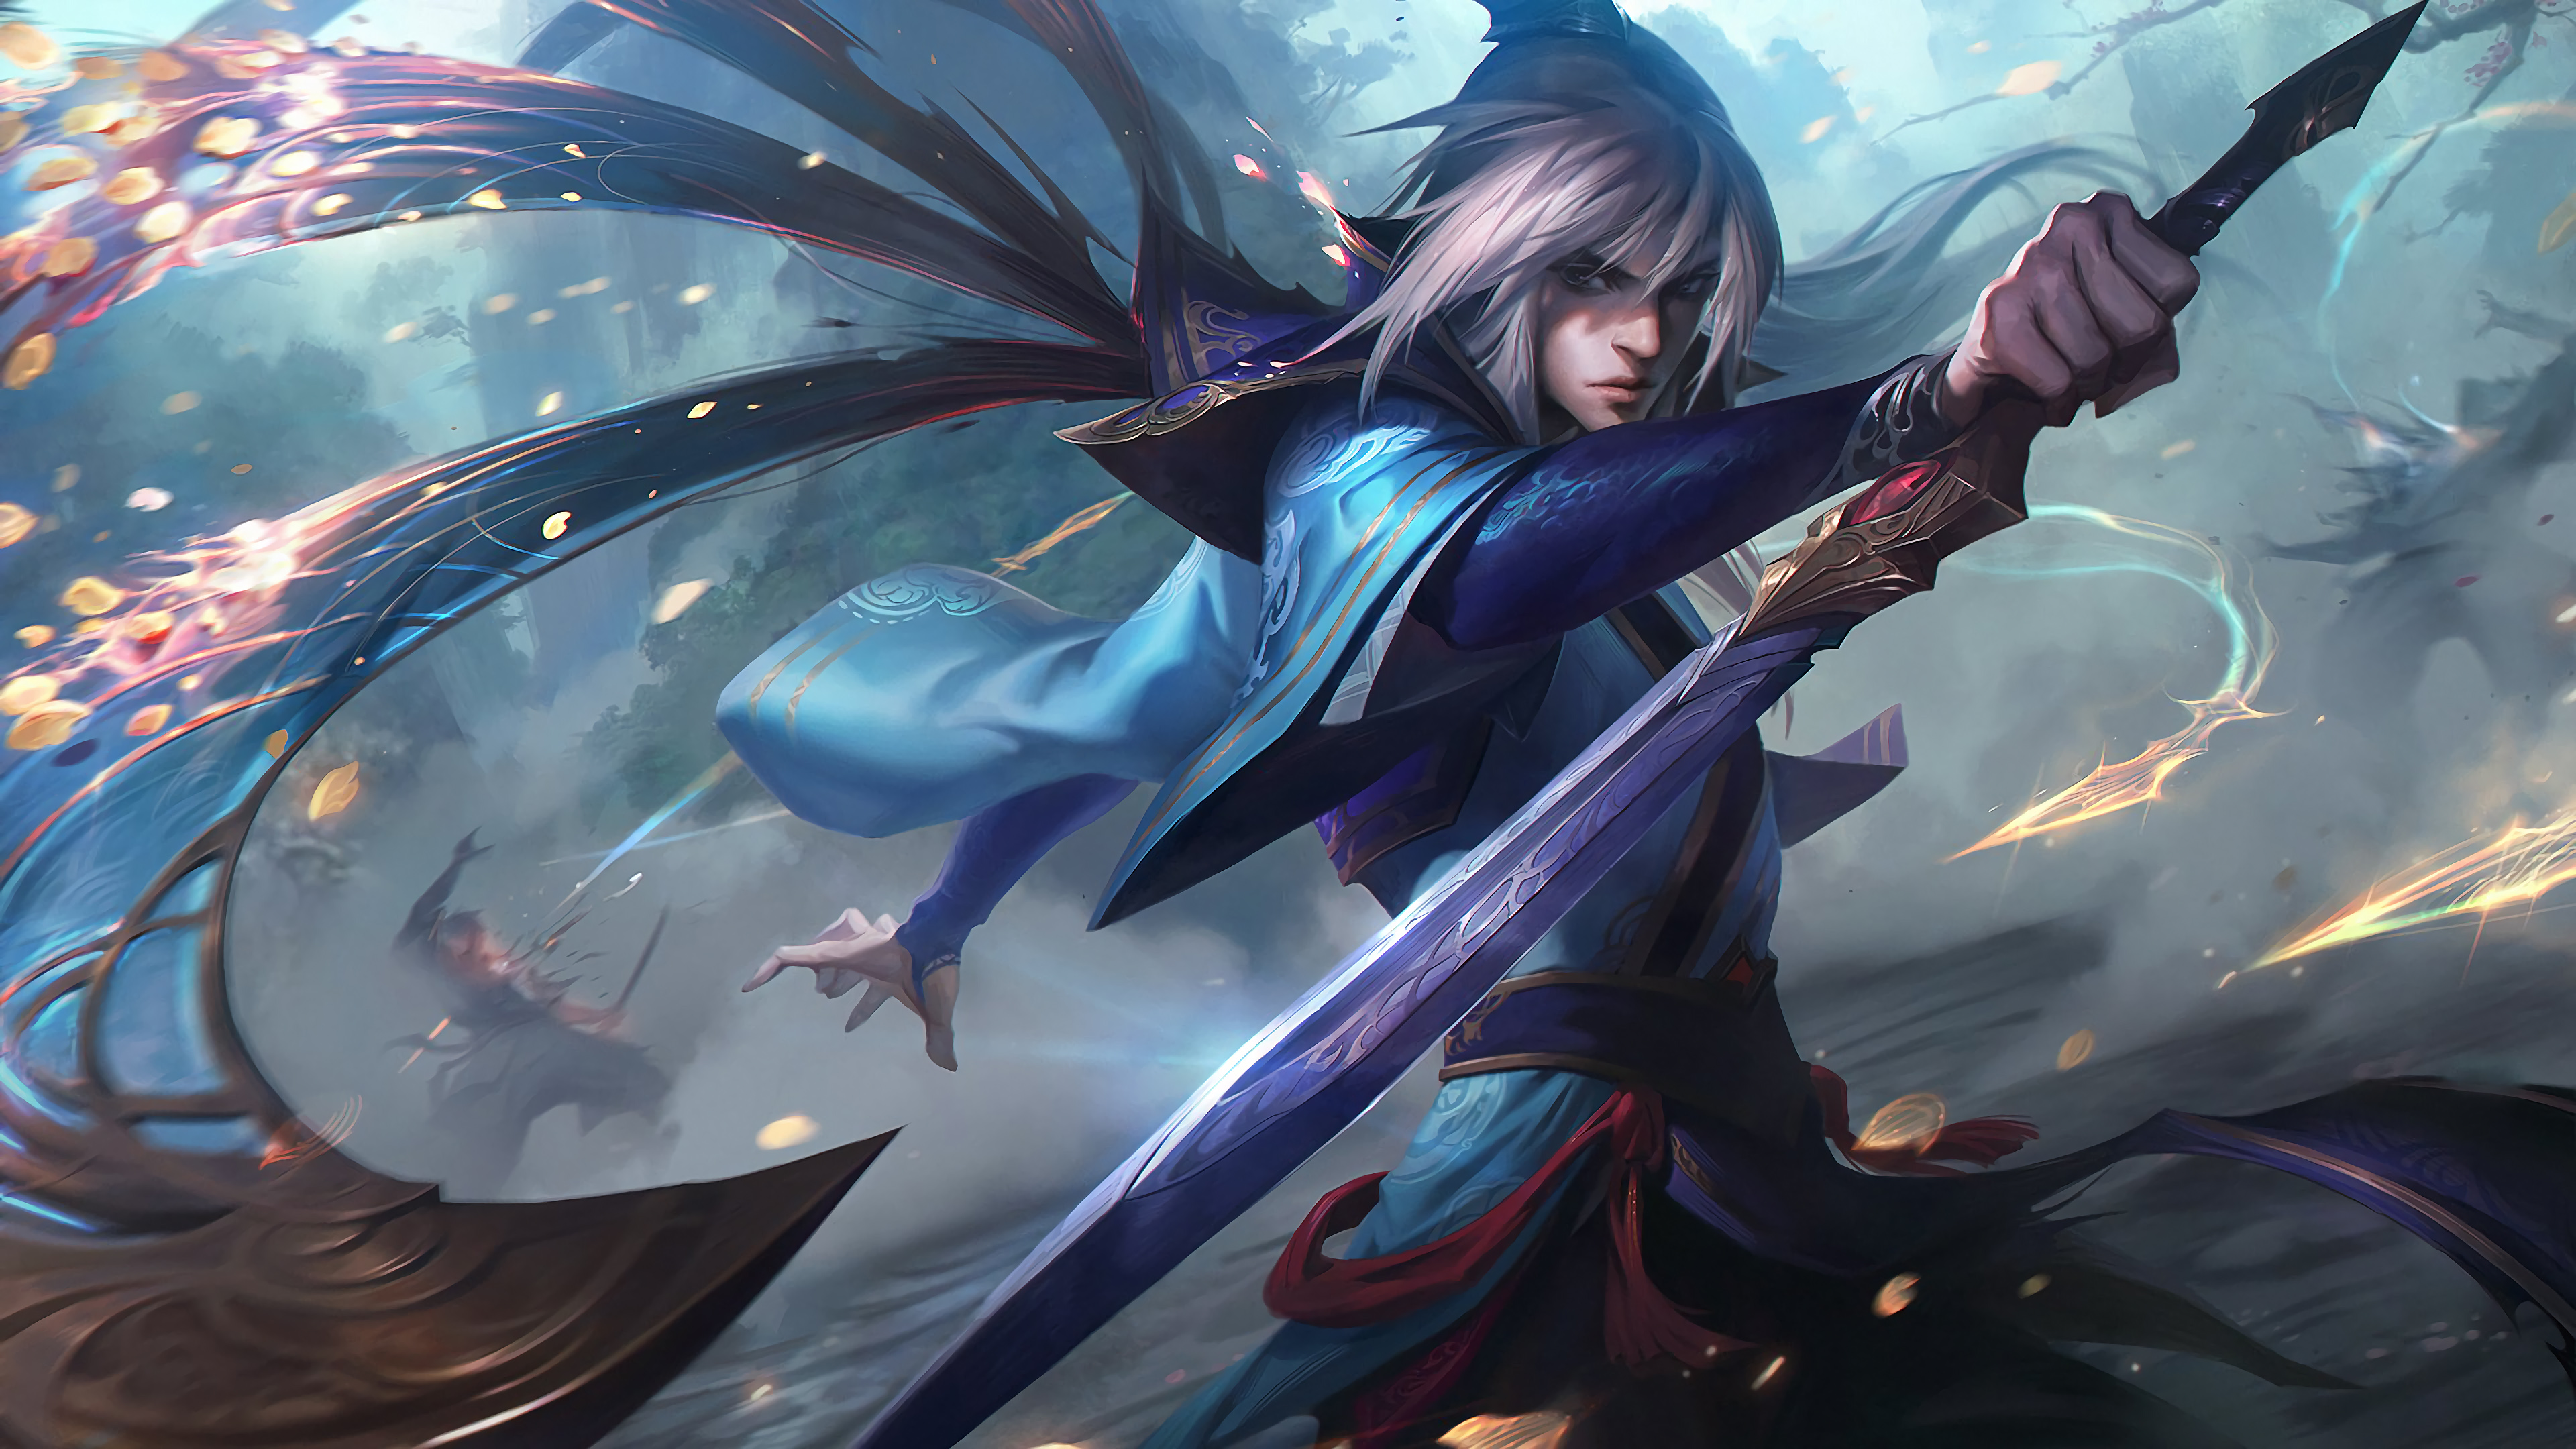 talon league of legends 4k 1537692085 - Talon League Of Legends 4k - league of legends wallpapers, hd-wallpapers, games wallpapers, digital art wallpapers, deviantart wallpapers, artwork wallpapers, artist wallpapers, 4k-wallpapers